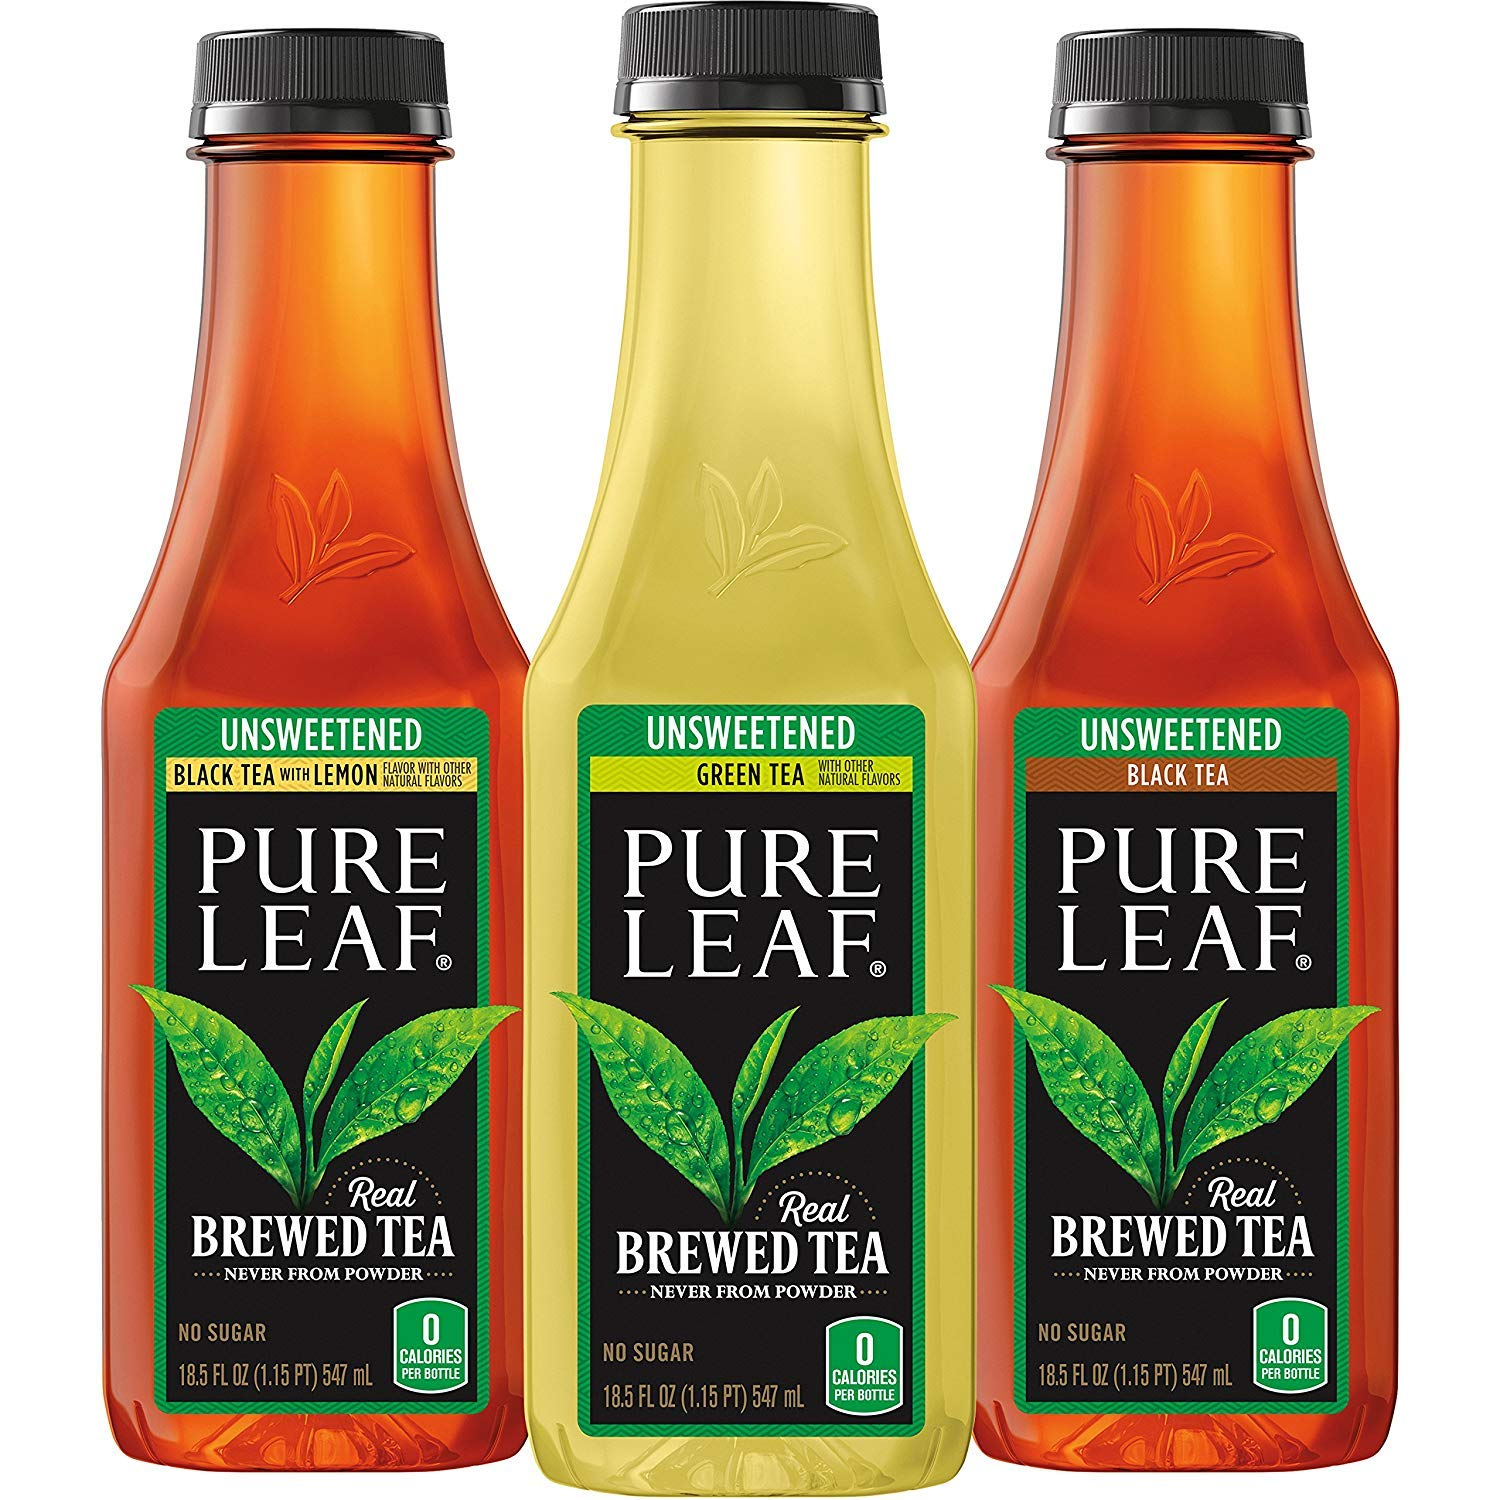 Pure Leaf Iced Tea, 0 Calories Unsweetened Variety Pack, 18.5 fl oz. cans (12 Pack)